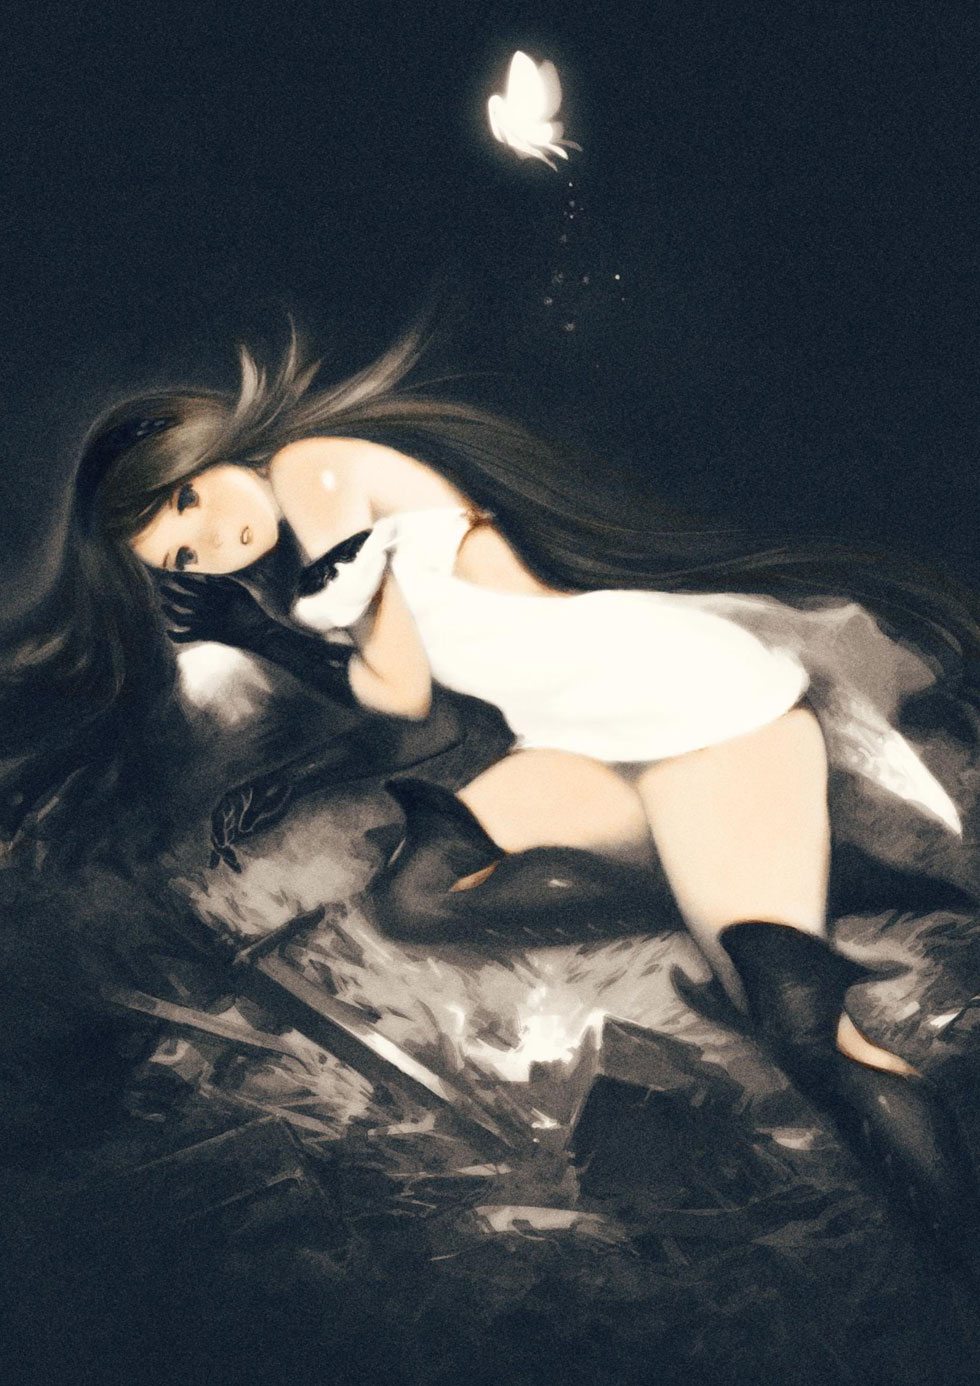 Bravely Default: Flying Fairy icon